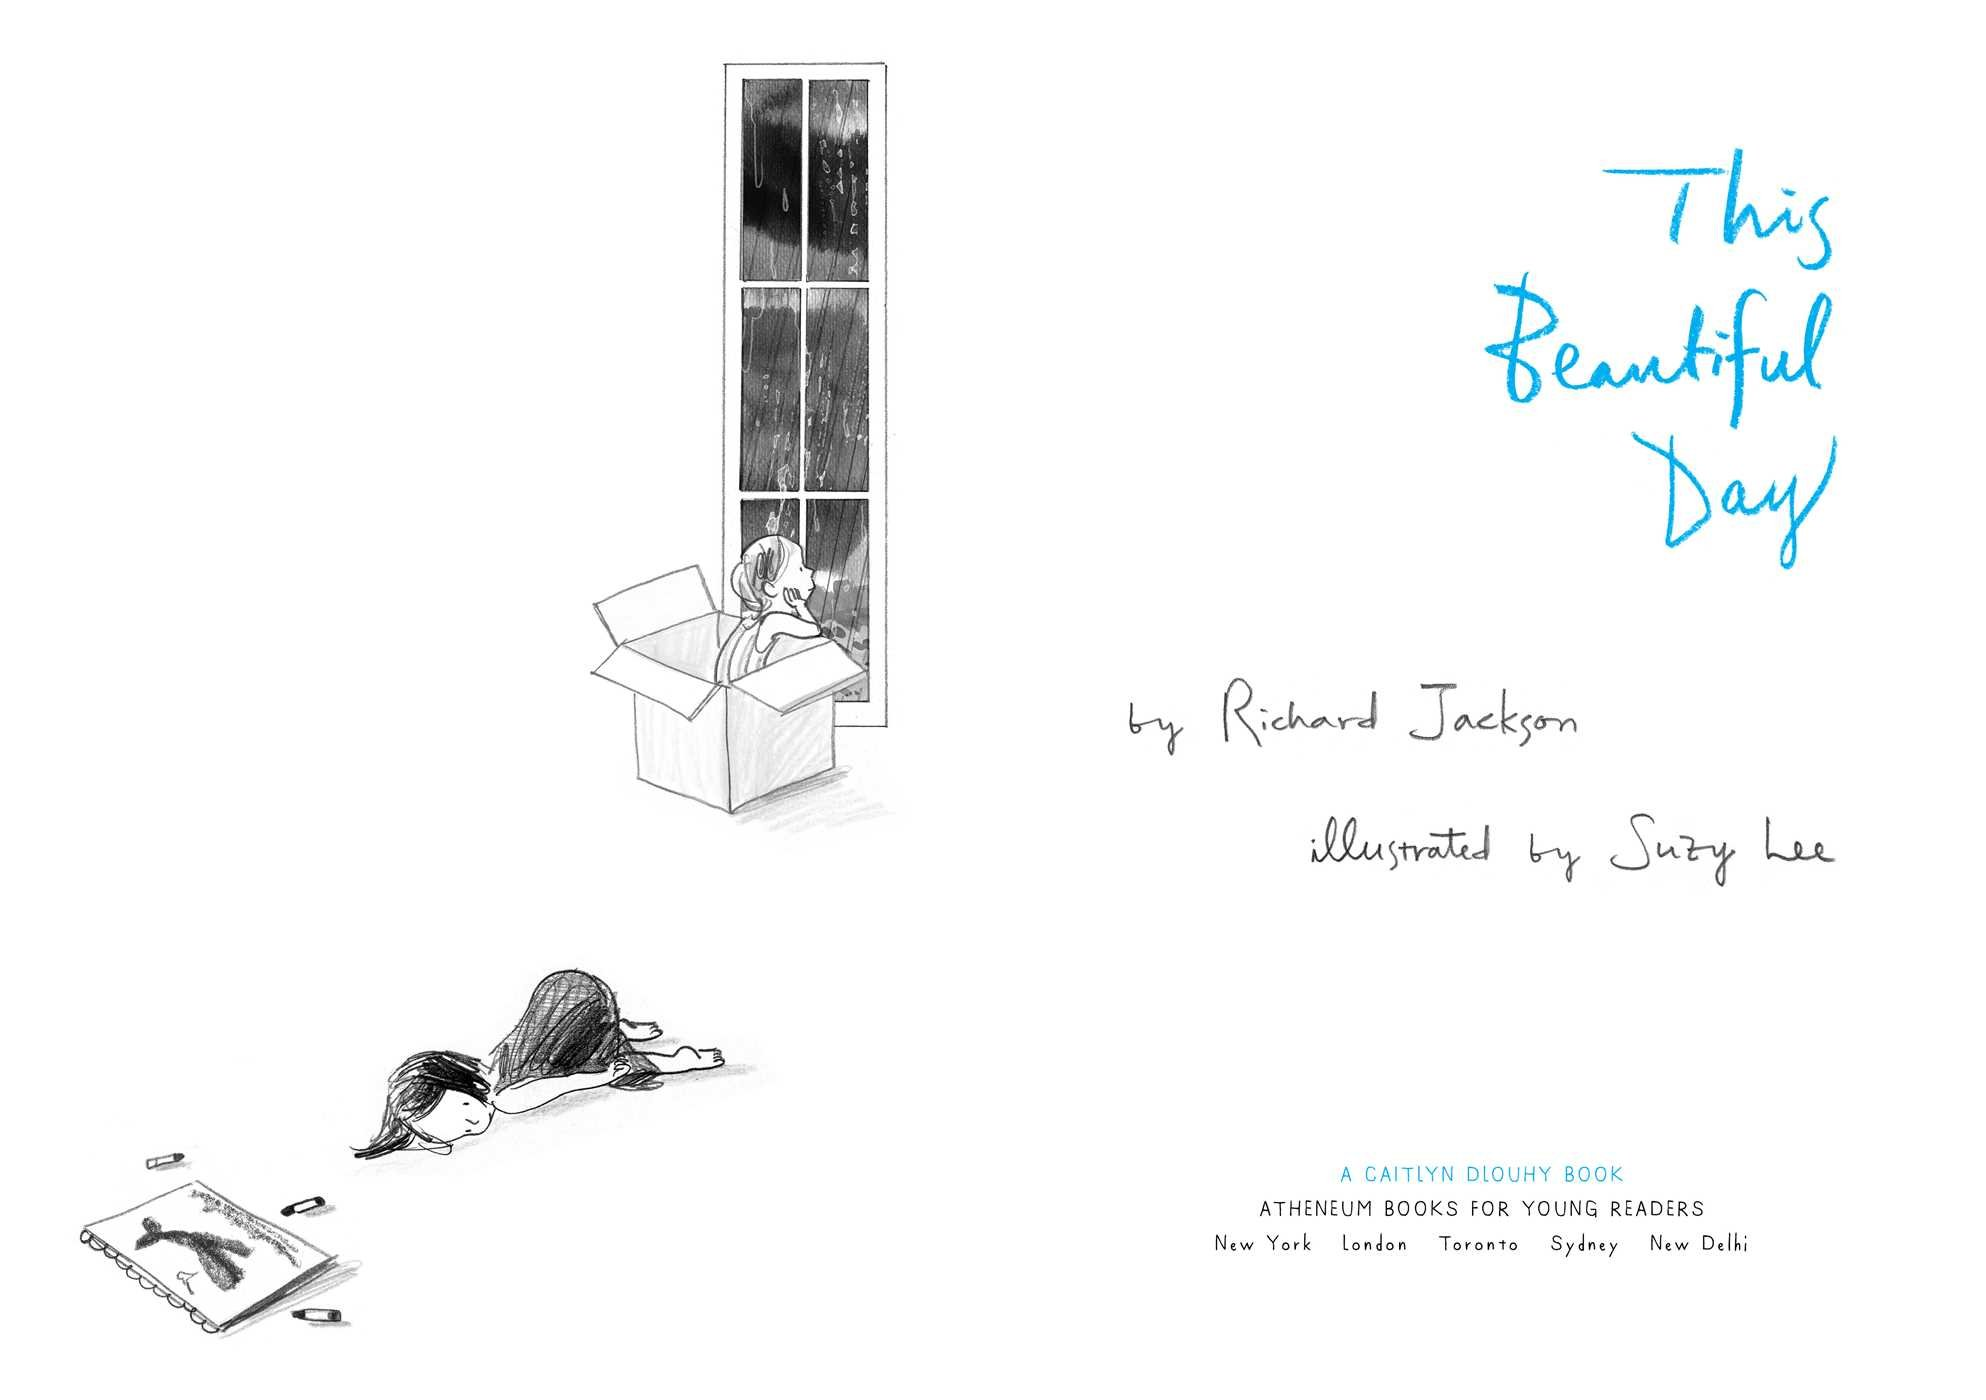 This beautiful day richard jackson suzy lee 9781481441391 this beautiful day richard jackson suzy lee 9781481441391 amazon books pooptronica Images